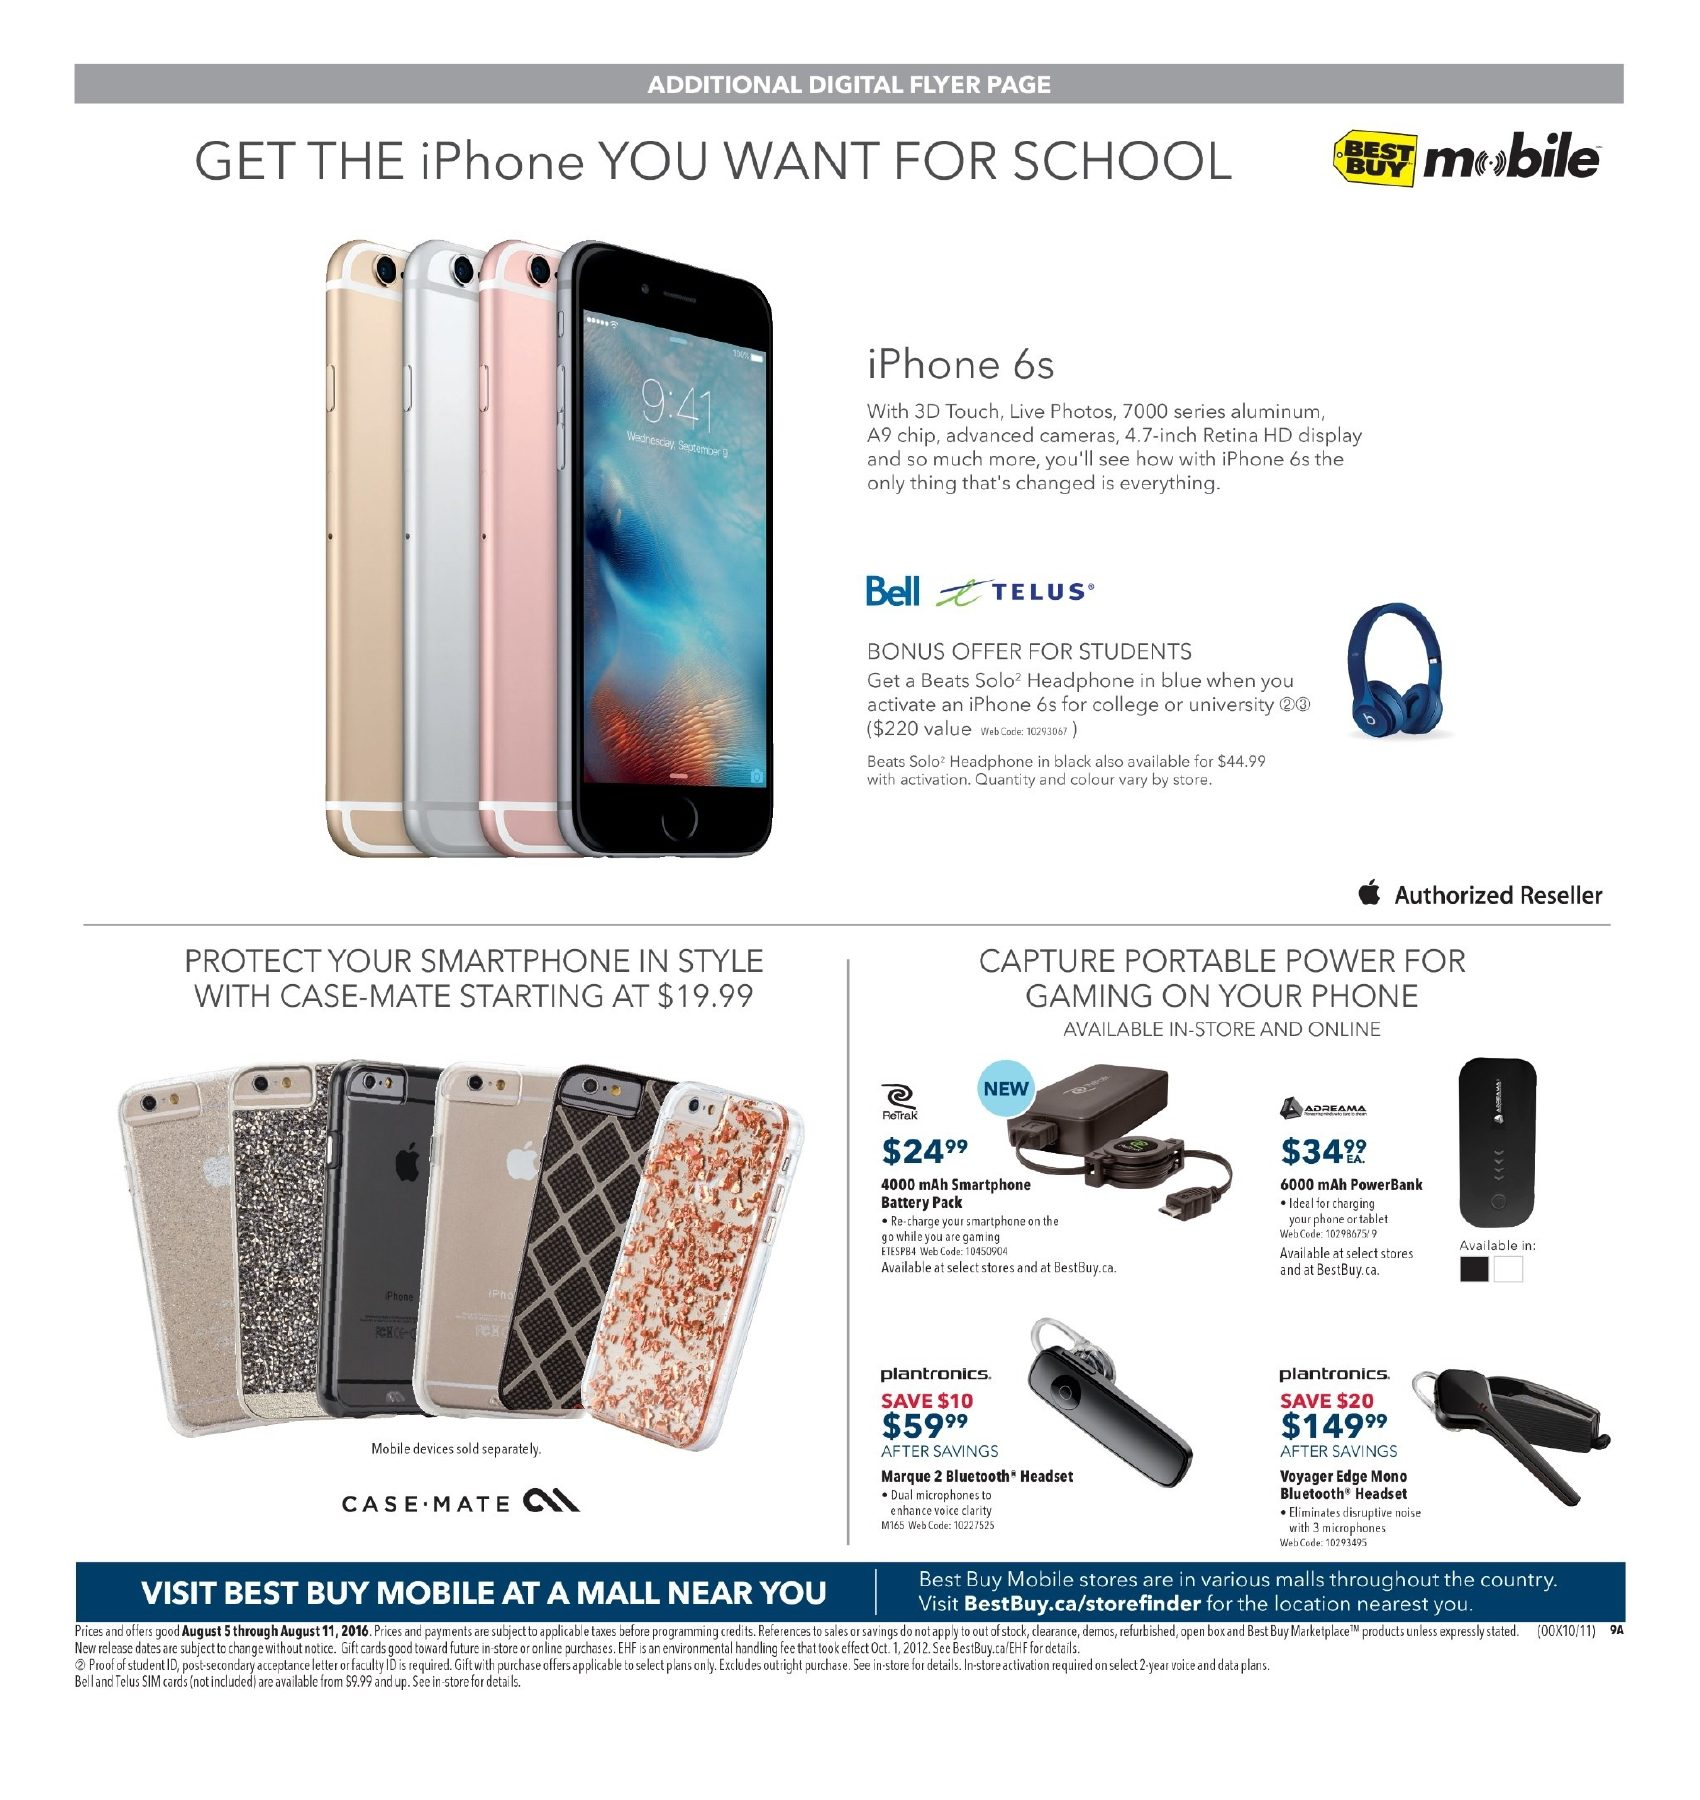 Best buy weekly flyer weekly all you need for an a school year best buy weekly flyer weekly all you need for an a school year aug 5 11 redflagdeals fandeluxe Gallery